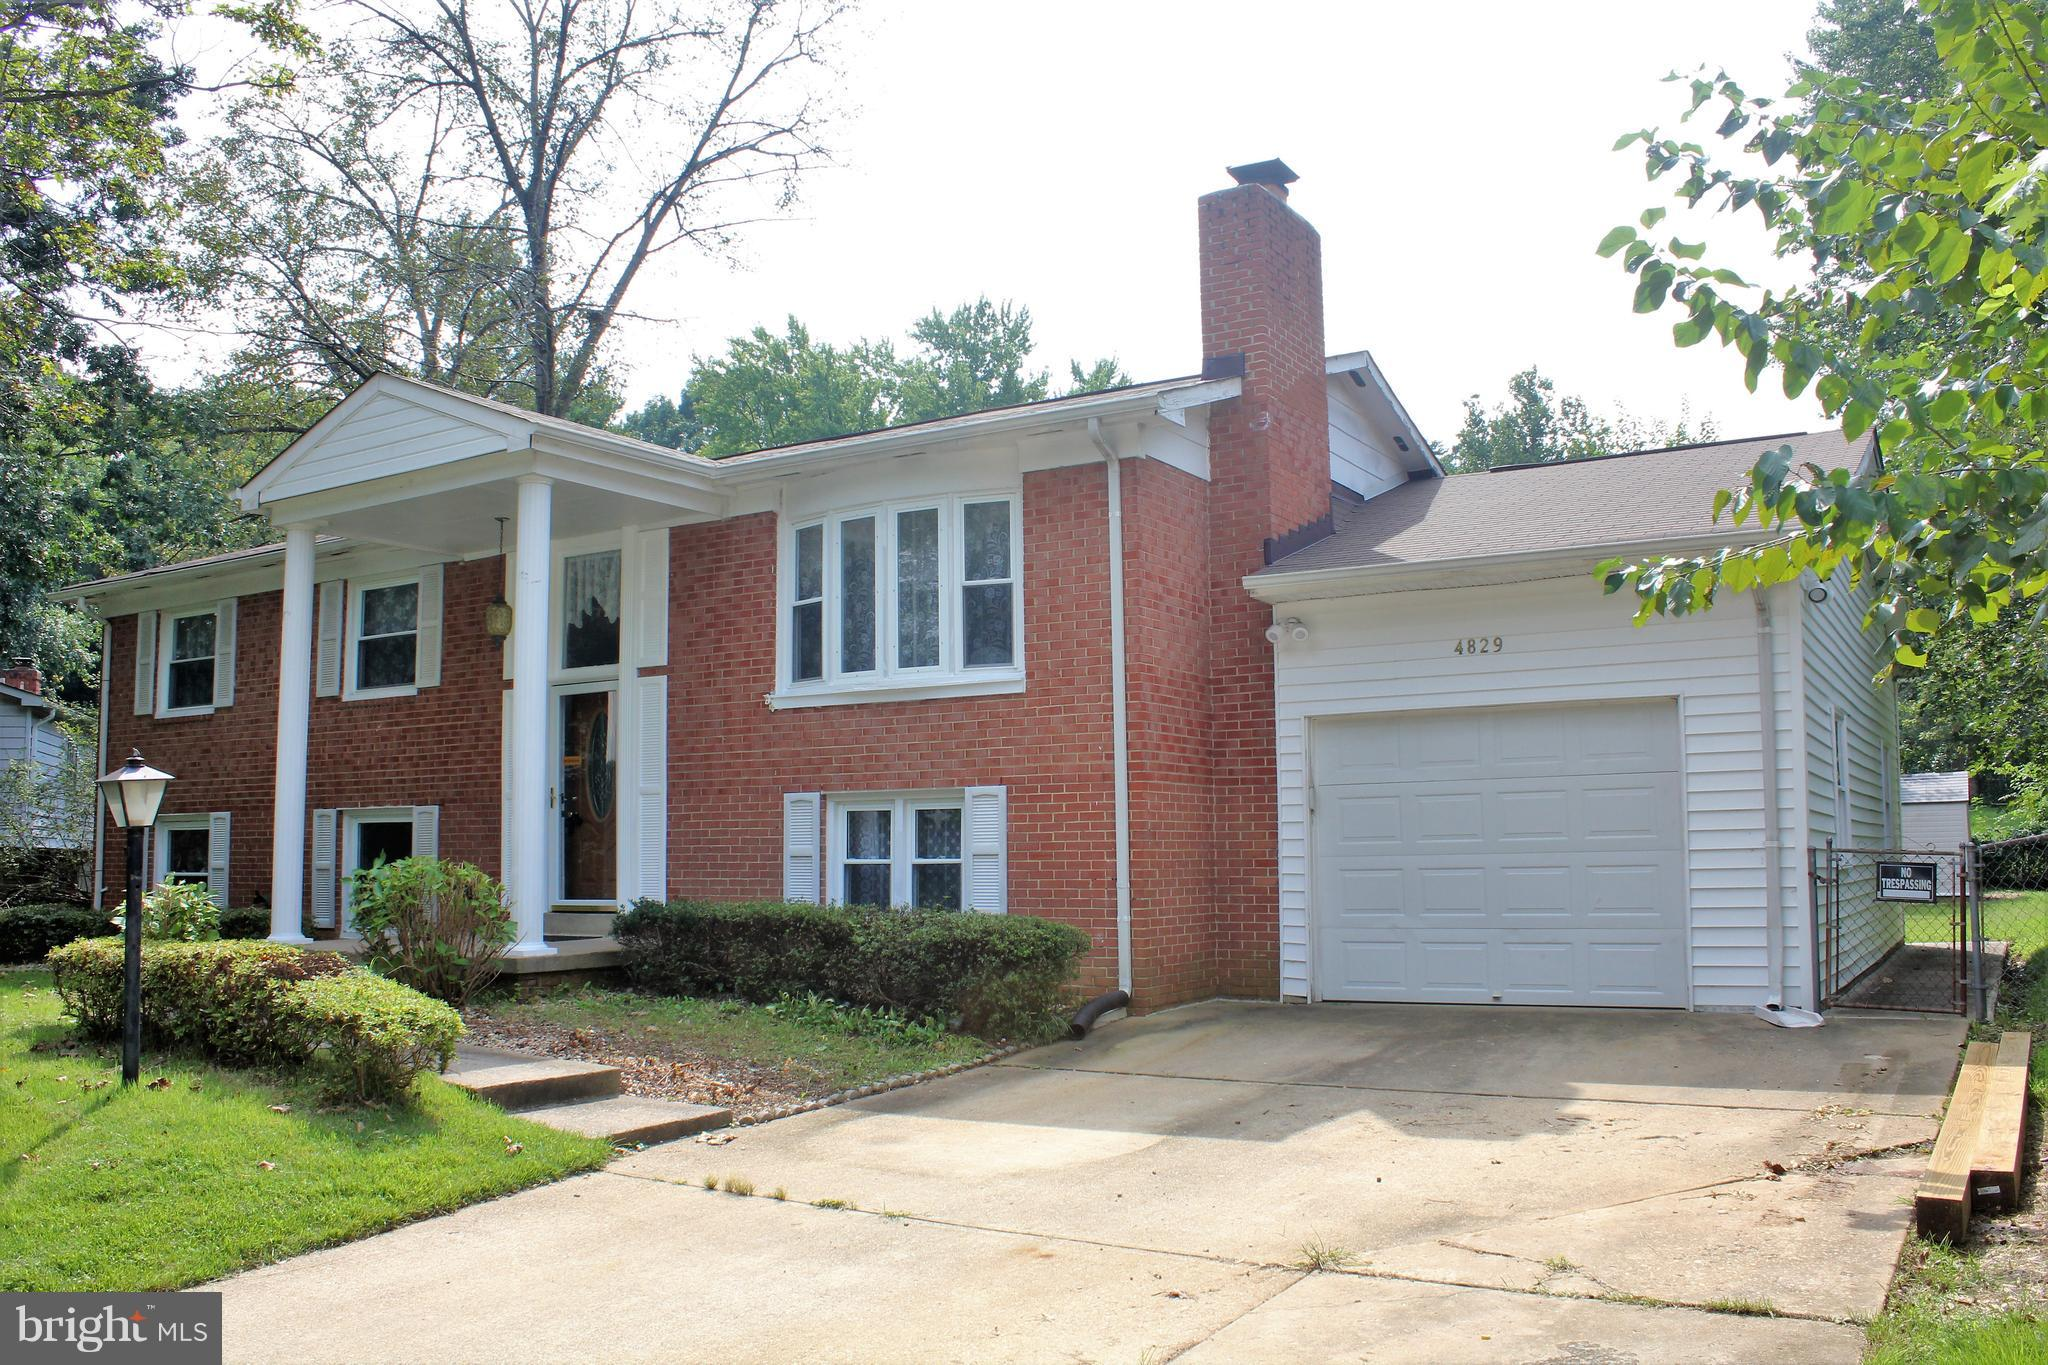 HOME HAS BEEN ENTIRELY REMODELED!!! 5BD  3BR * NEW STAINLESS STEEL APPLIANCES IN KITCHEN * GRANITE C